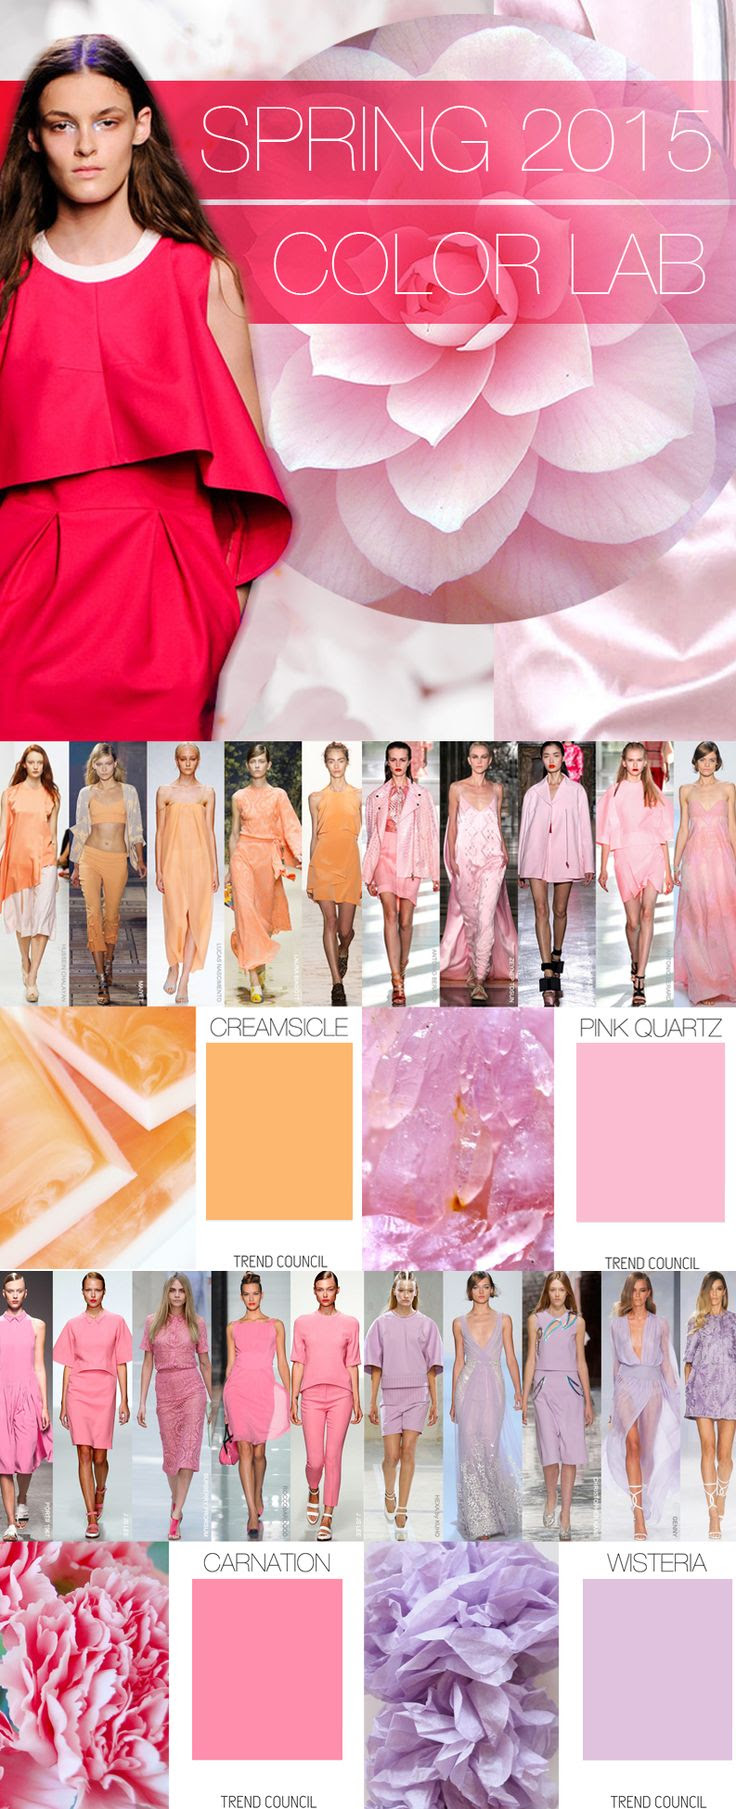 Trend Council: Spring 2015 Color Lab. We're loving the pastel shades!